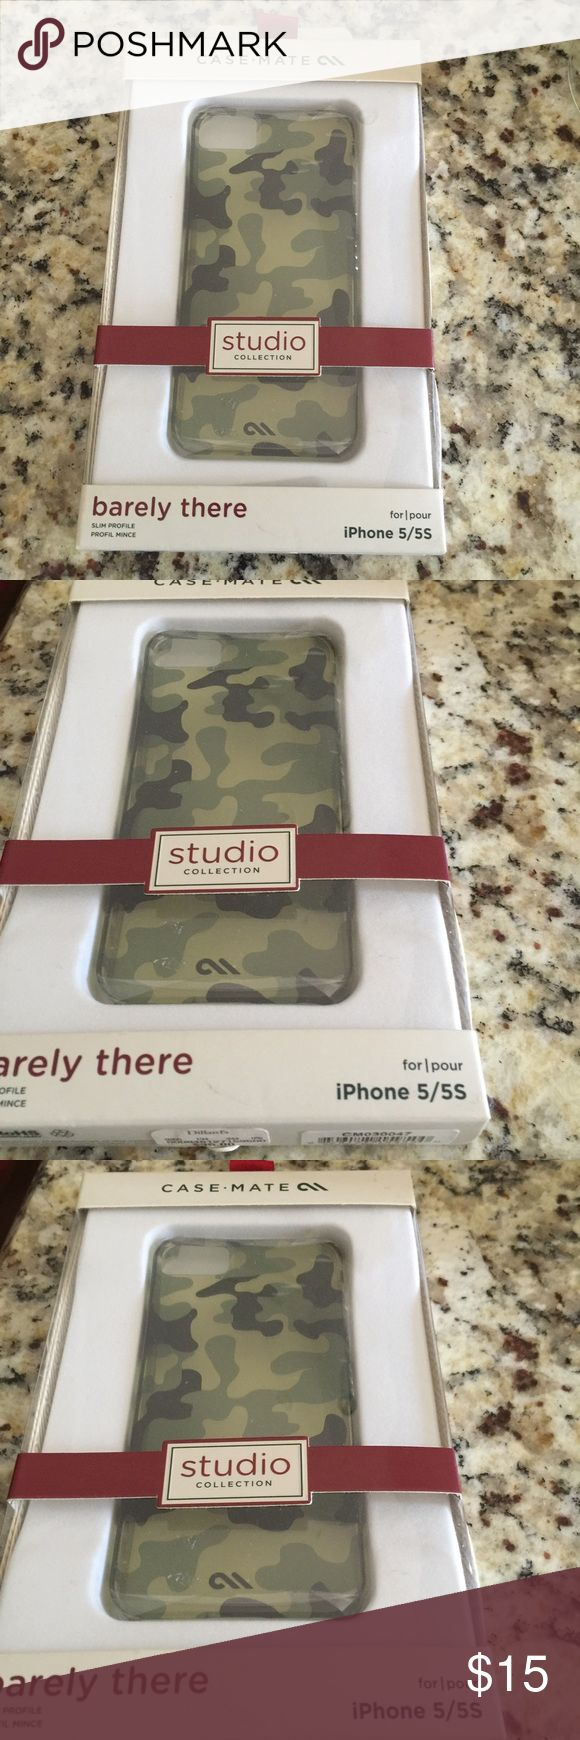 Case mate barely there  slim profile iPhone 5/5s Case mate barely there camo iPhone 5/5s brand new in box studio collection Case mate Accessories Phone Cases